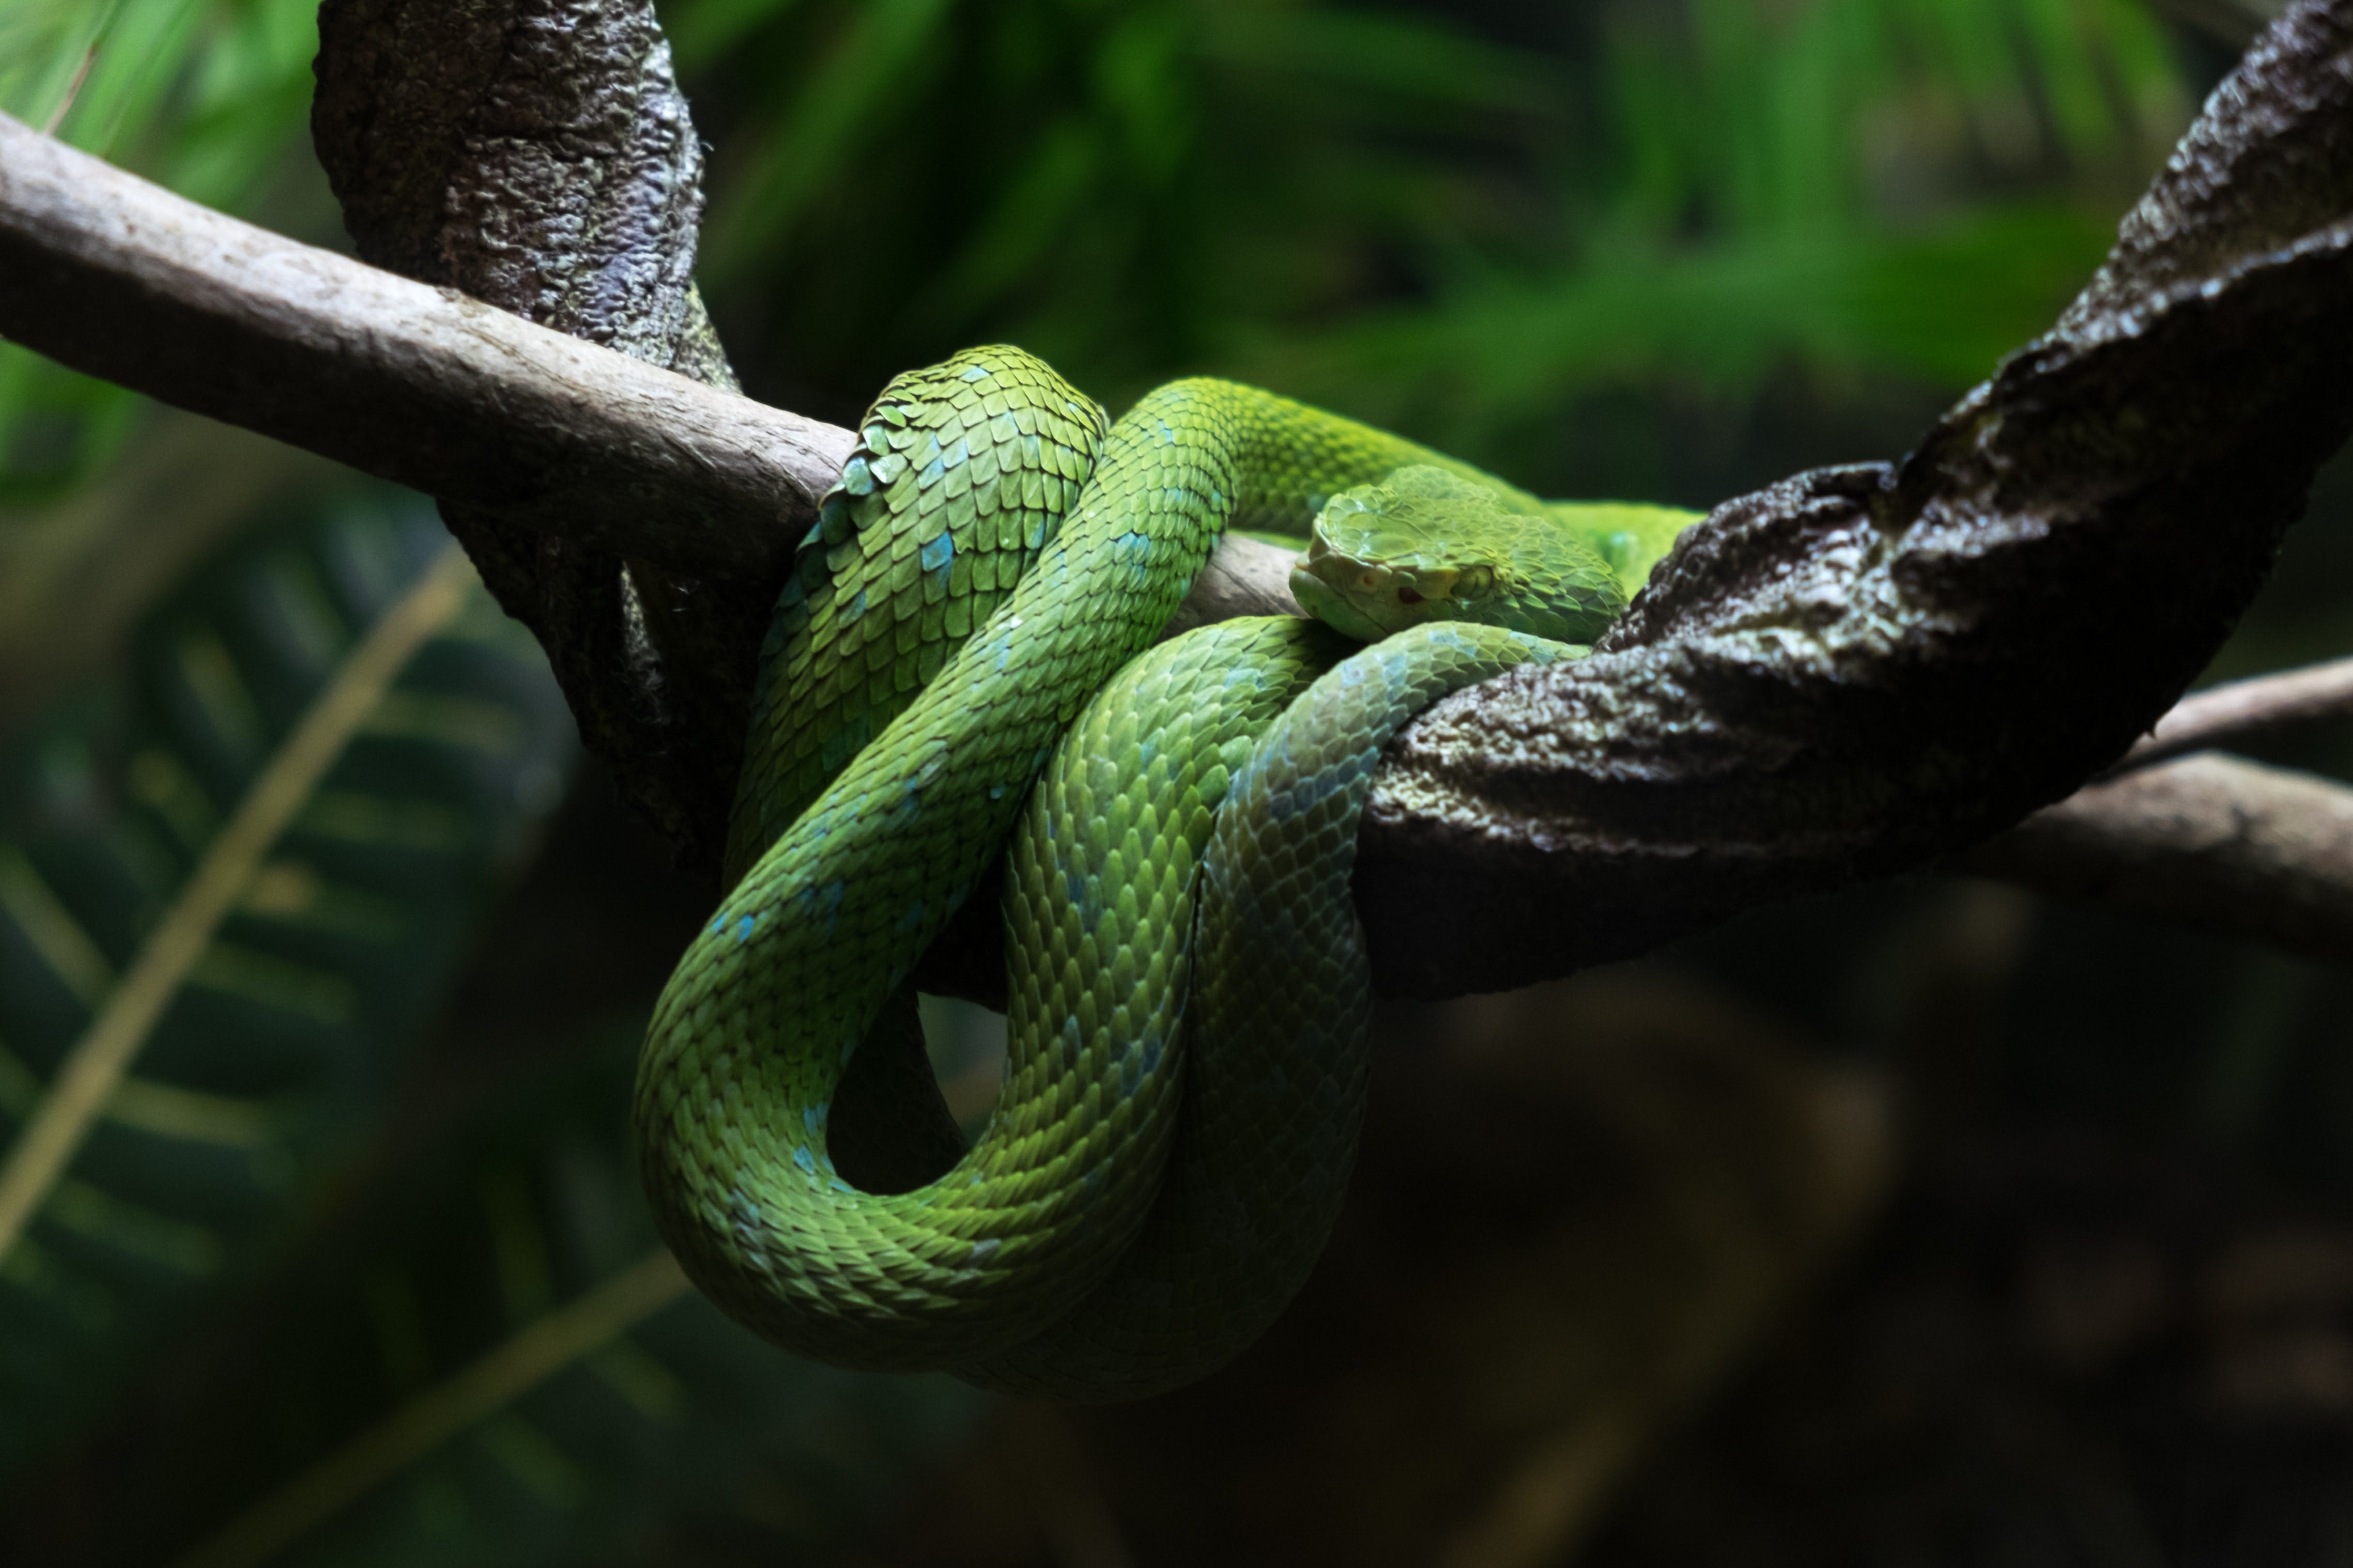 a green snake curled up in a tree